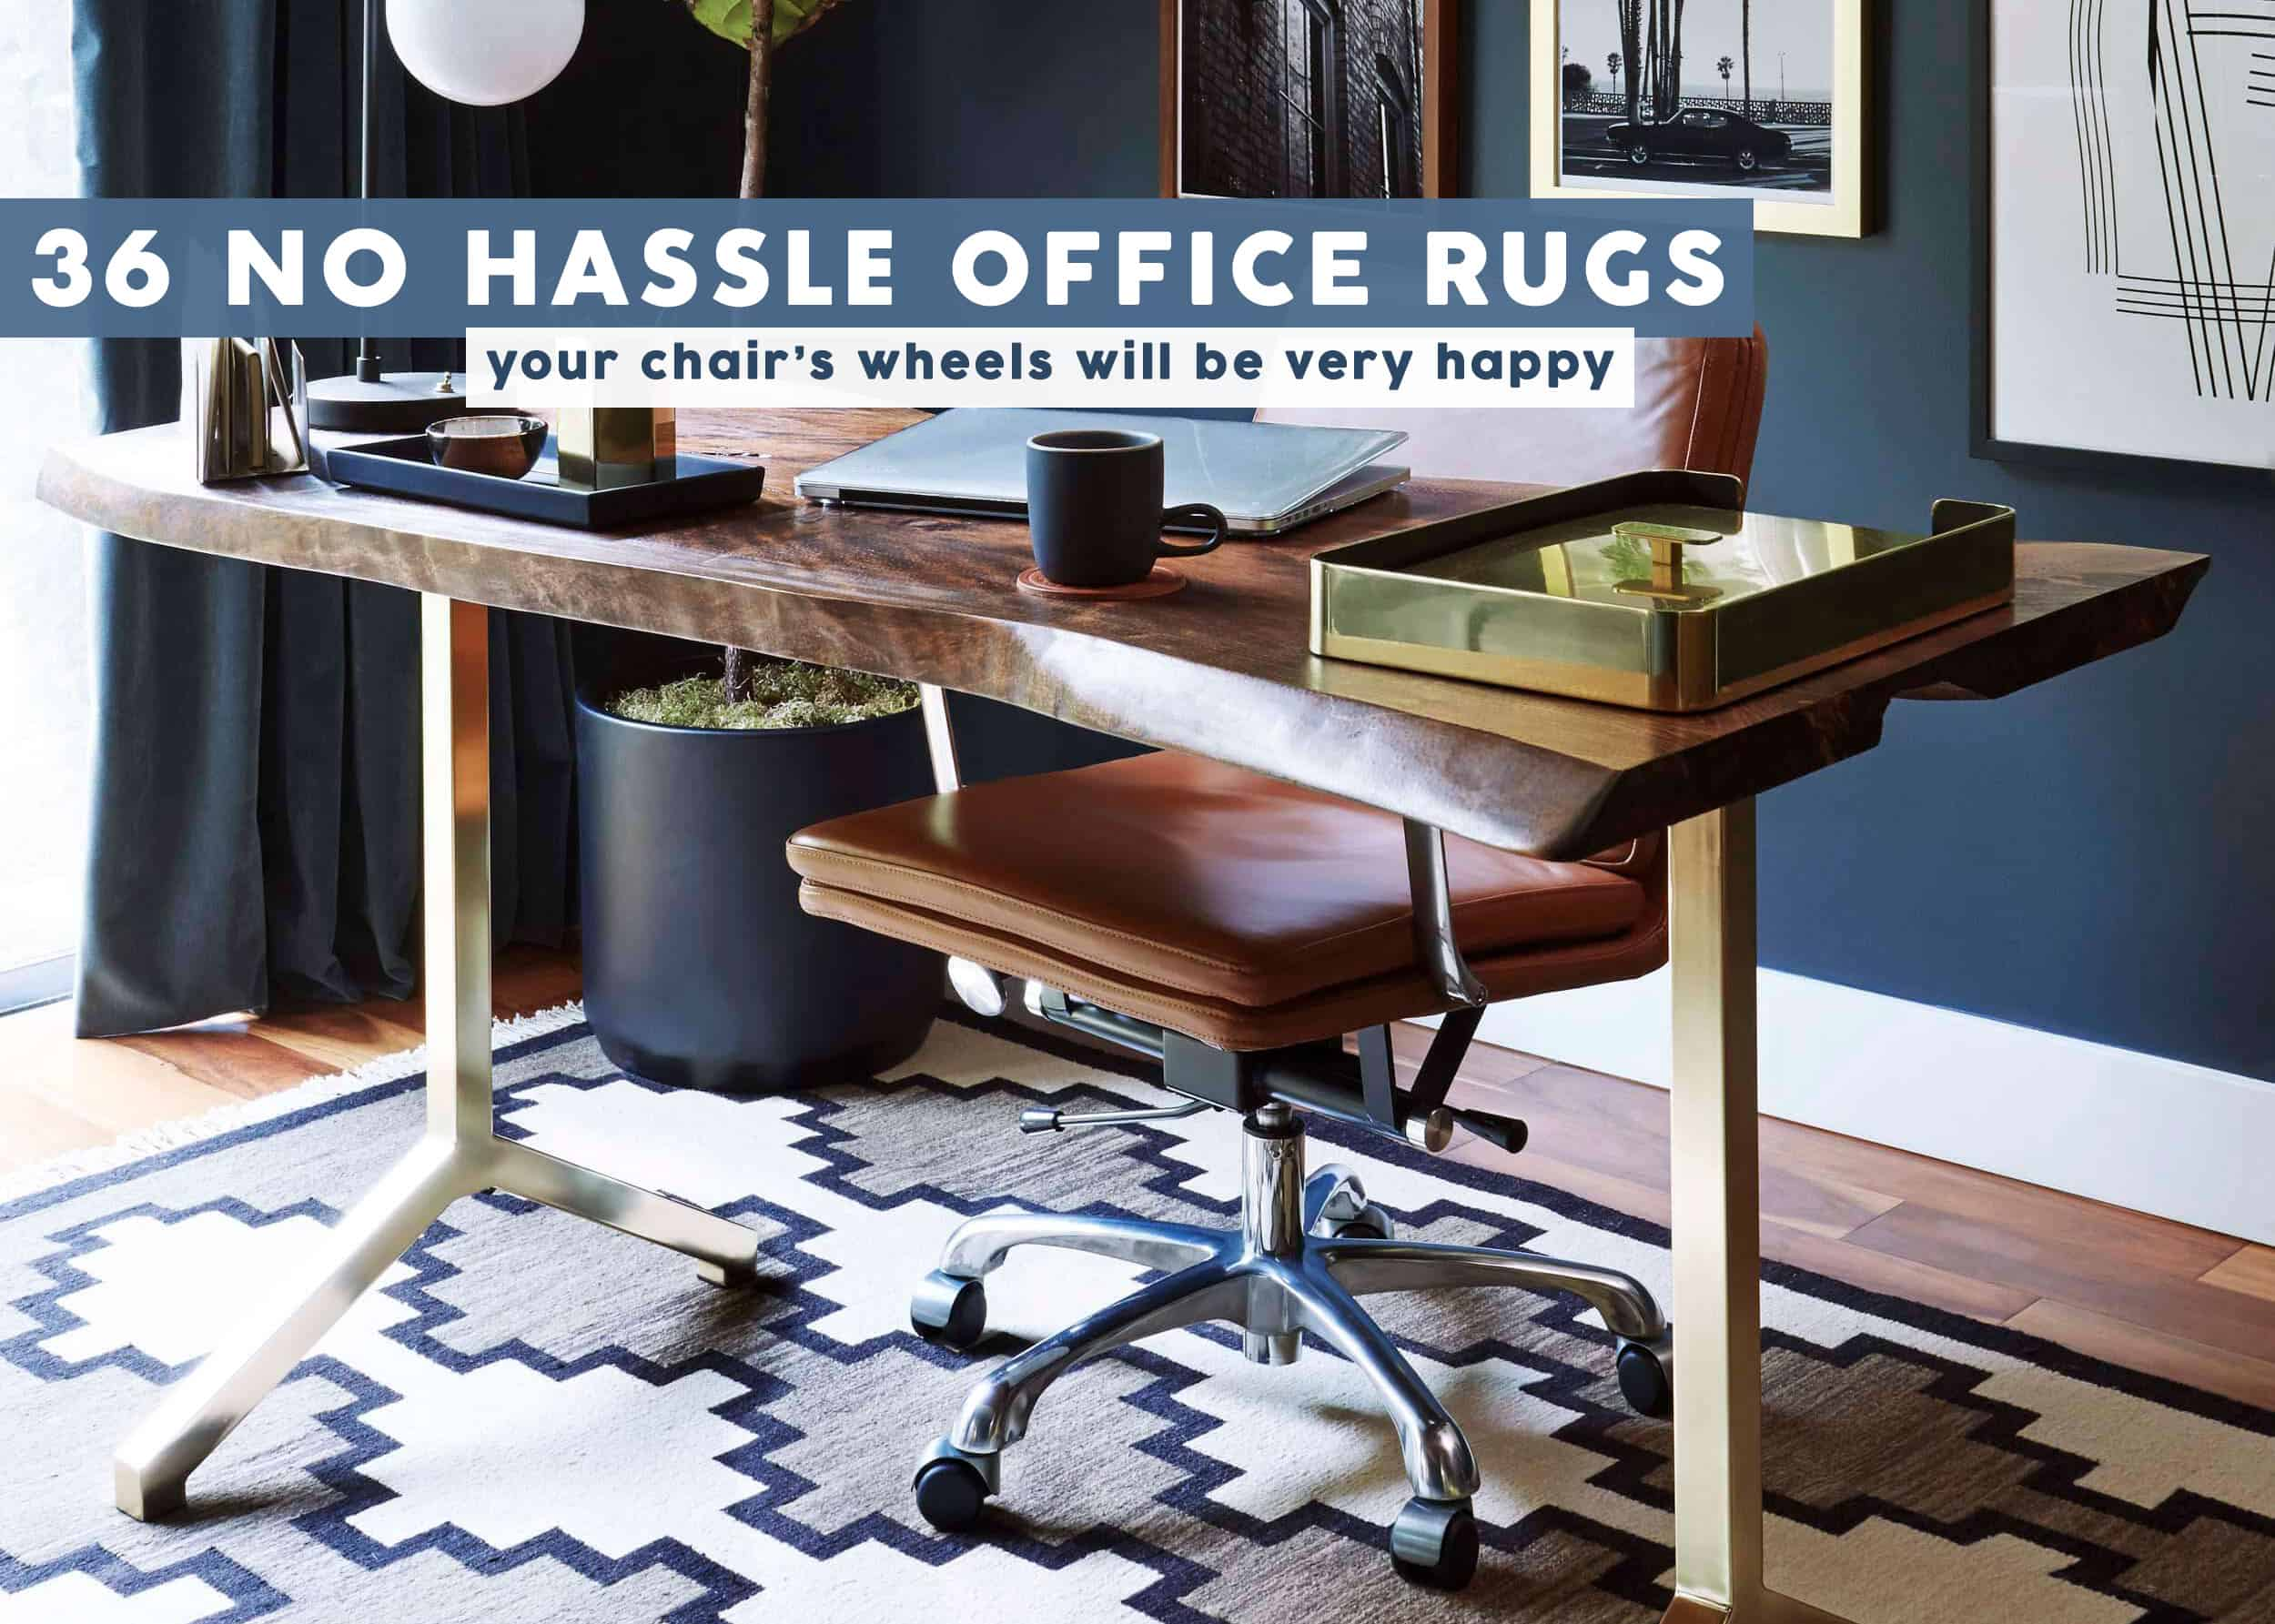 Picture of: Office Rugs You Can Roll Your Chair Over Emily Henderson